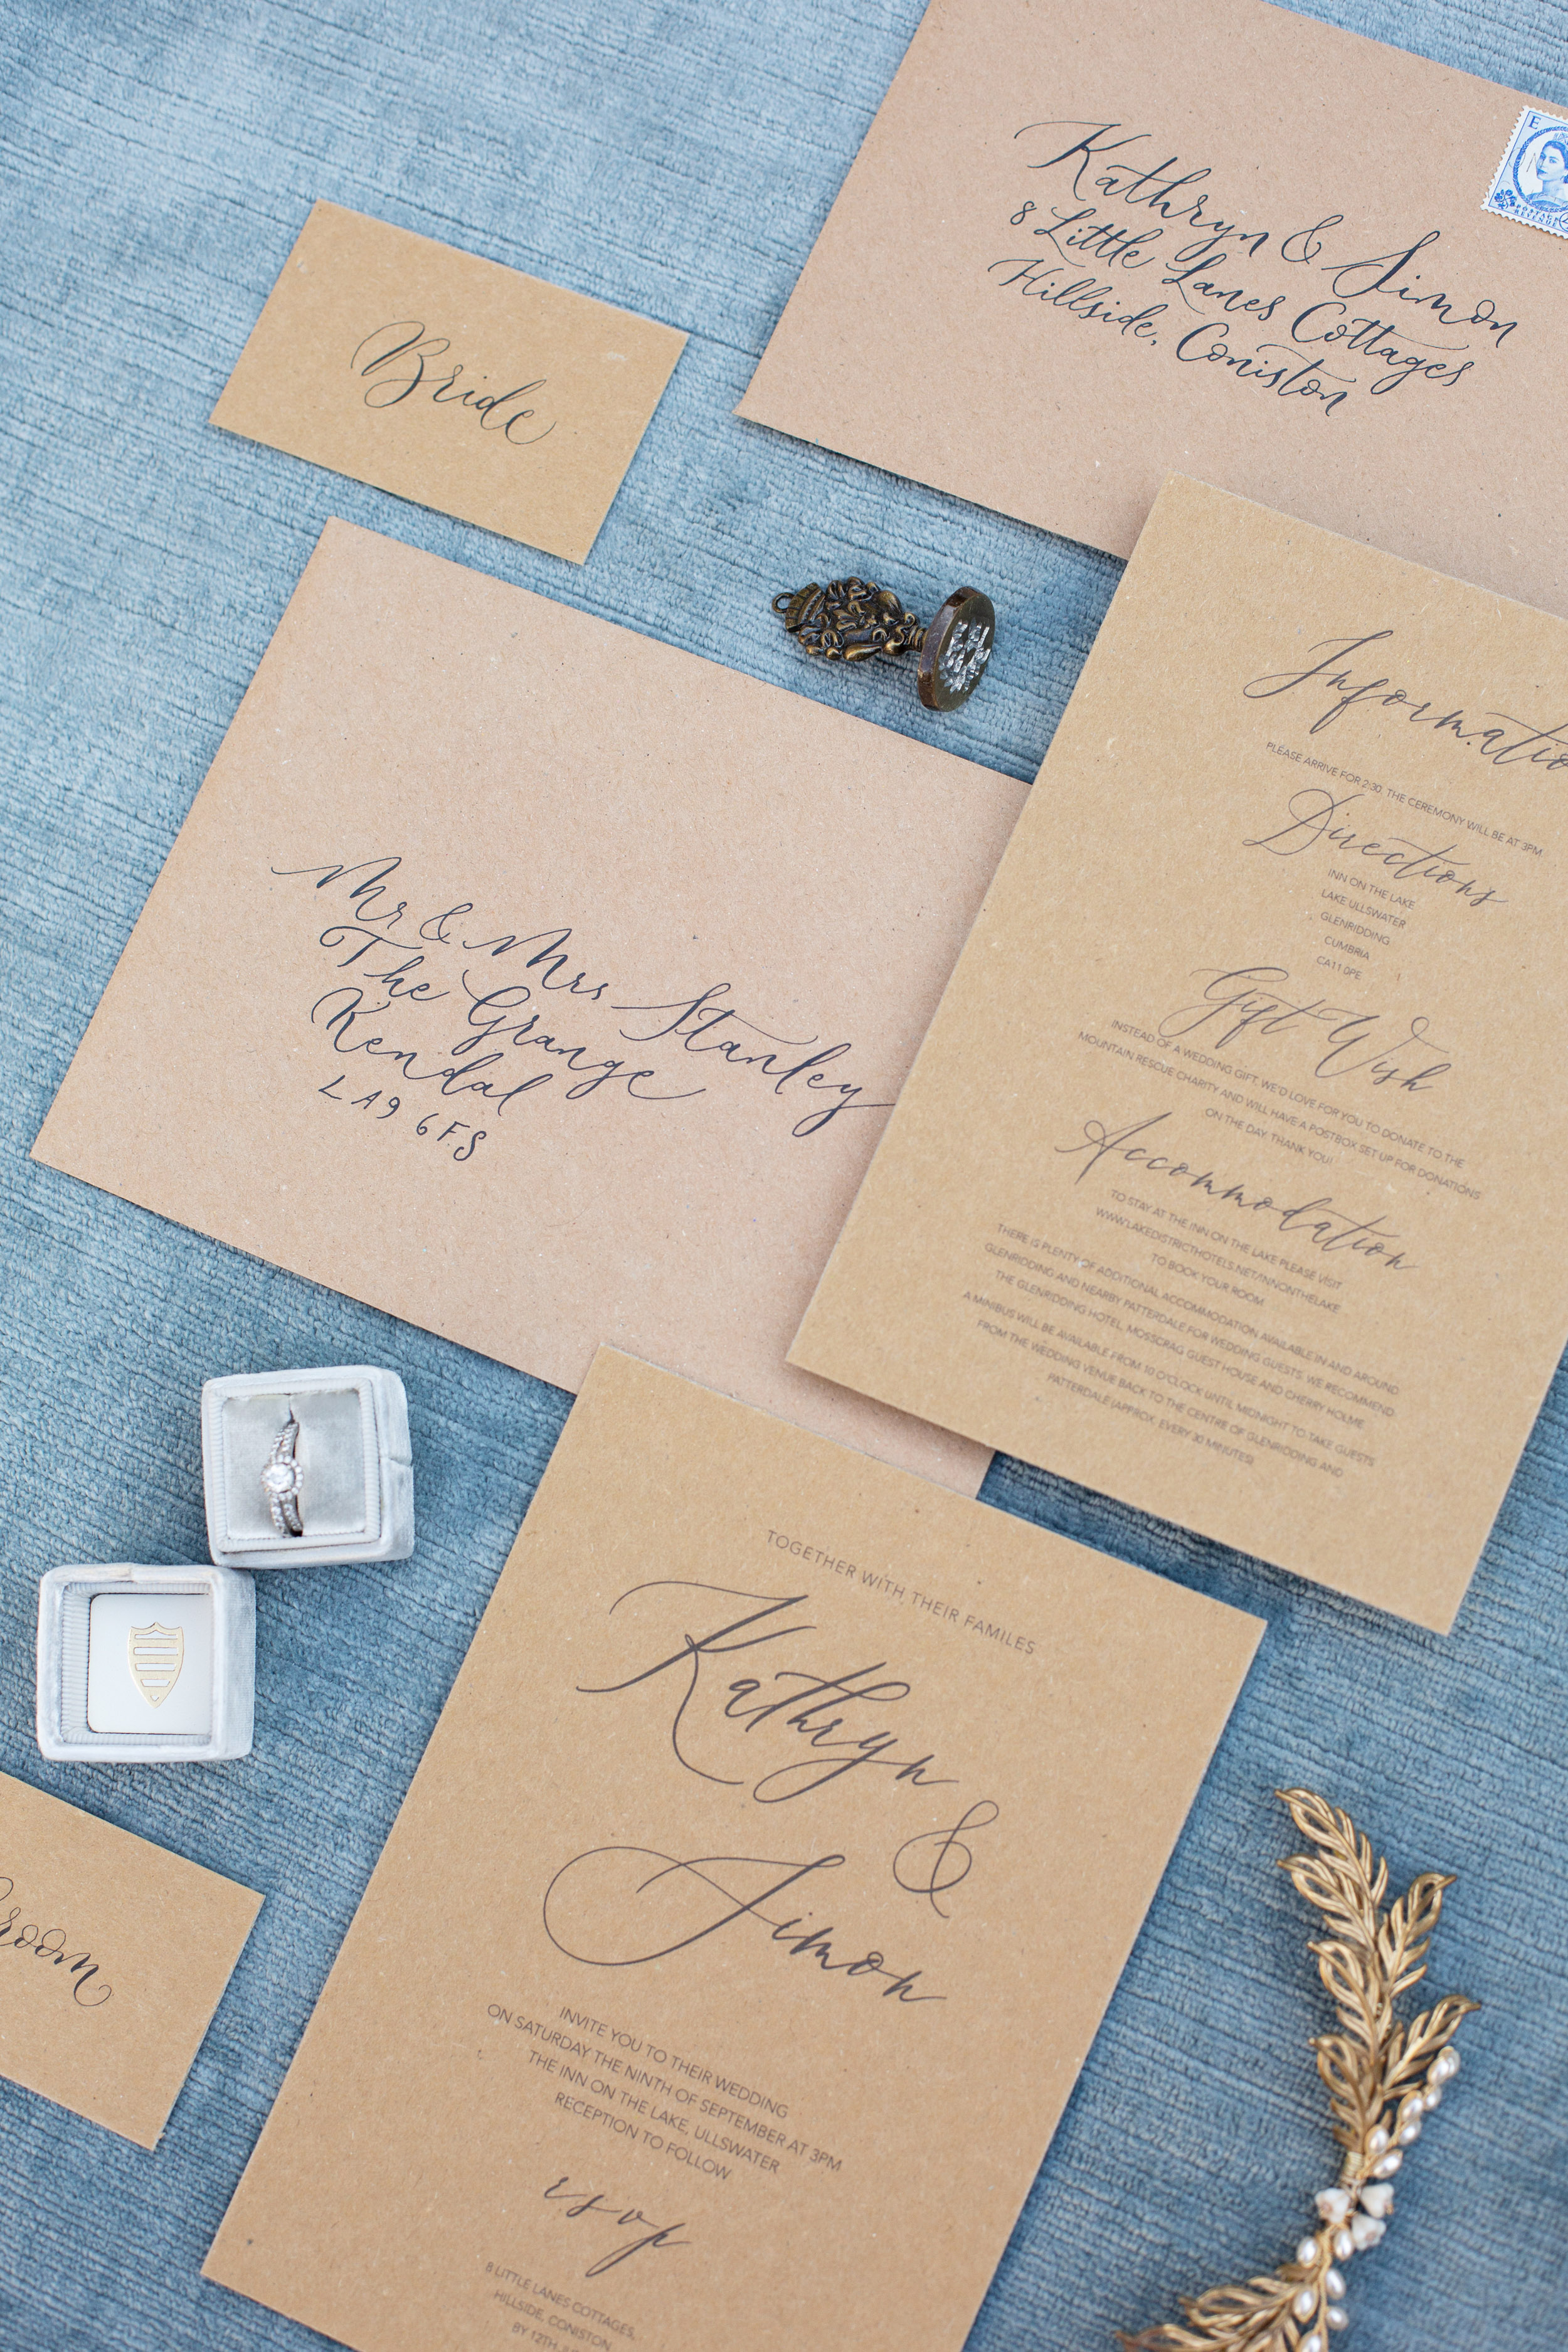 Rustic elegance sustainable wedding stationery from By Moon and Tide Calligraphy, photography credit Jess Reeve (6)